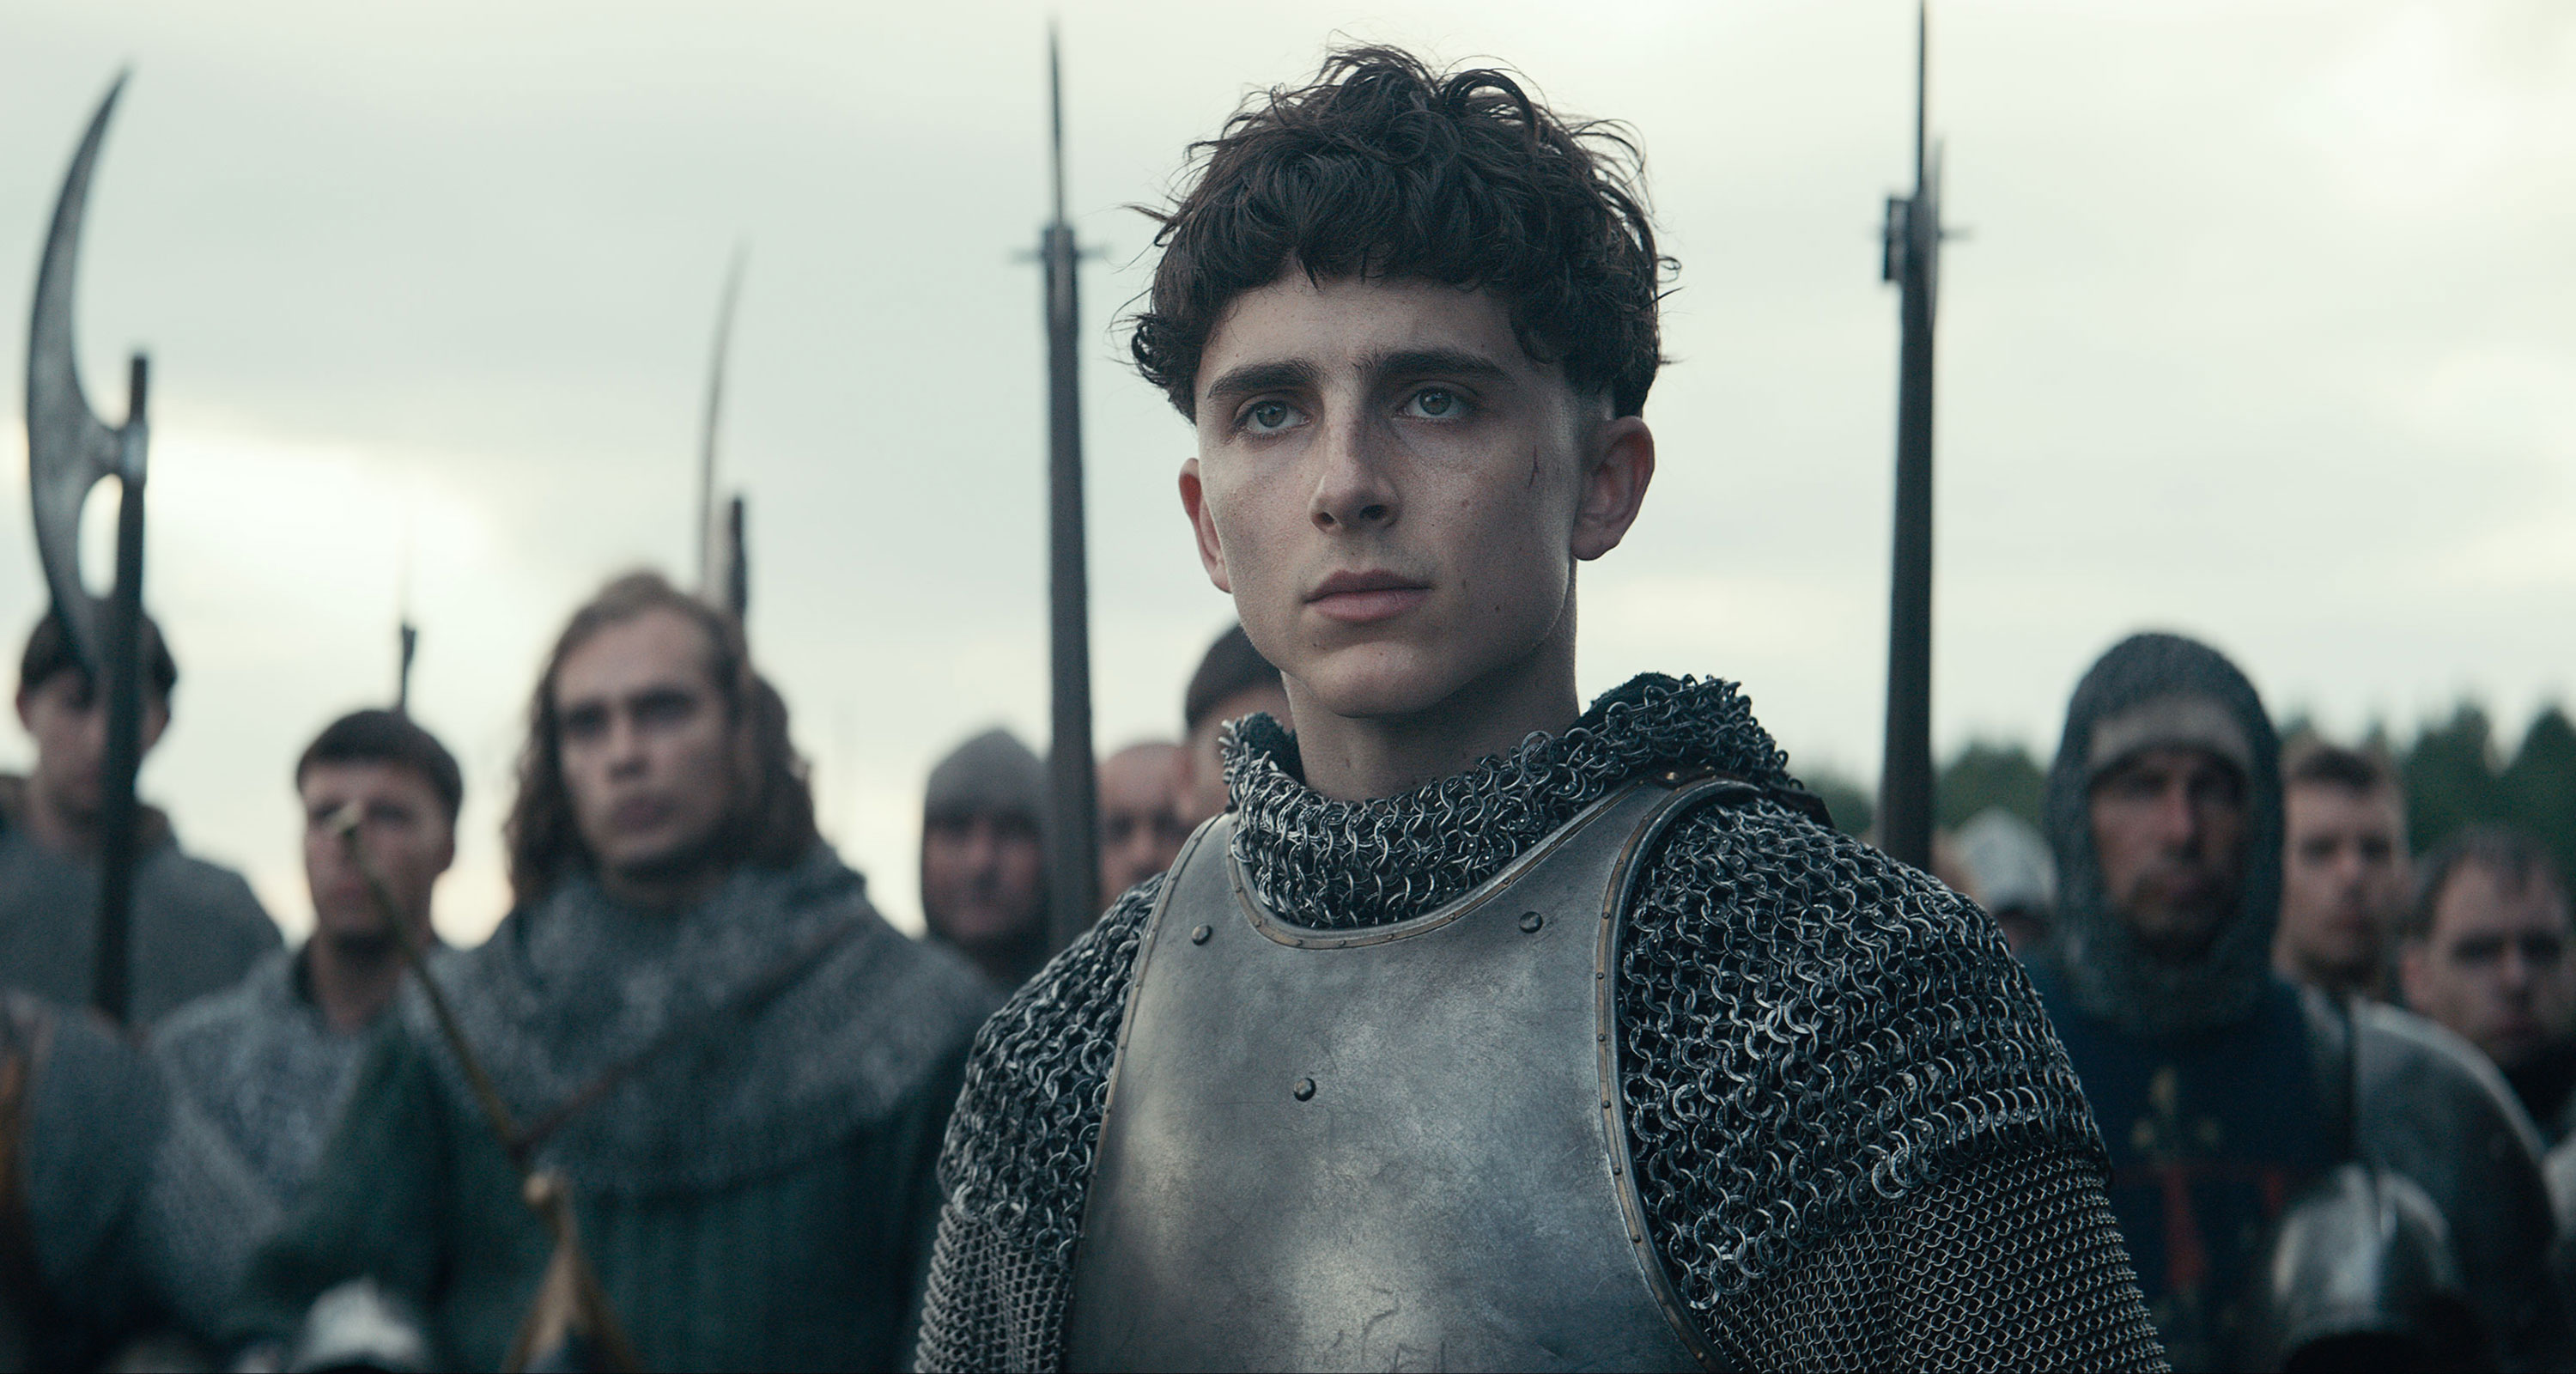 Henry (Chalamet), clad in armor, looks thoughtful.